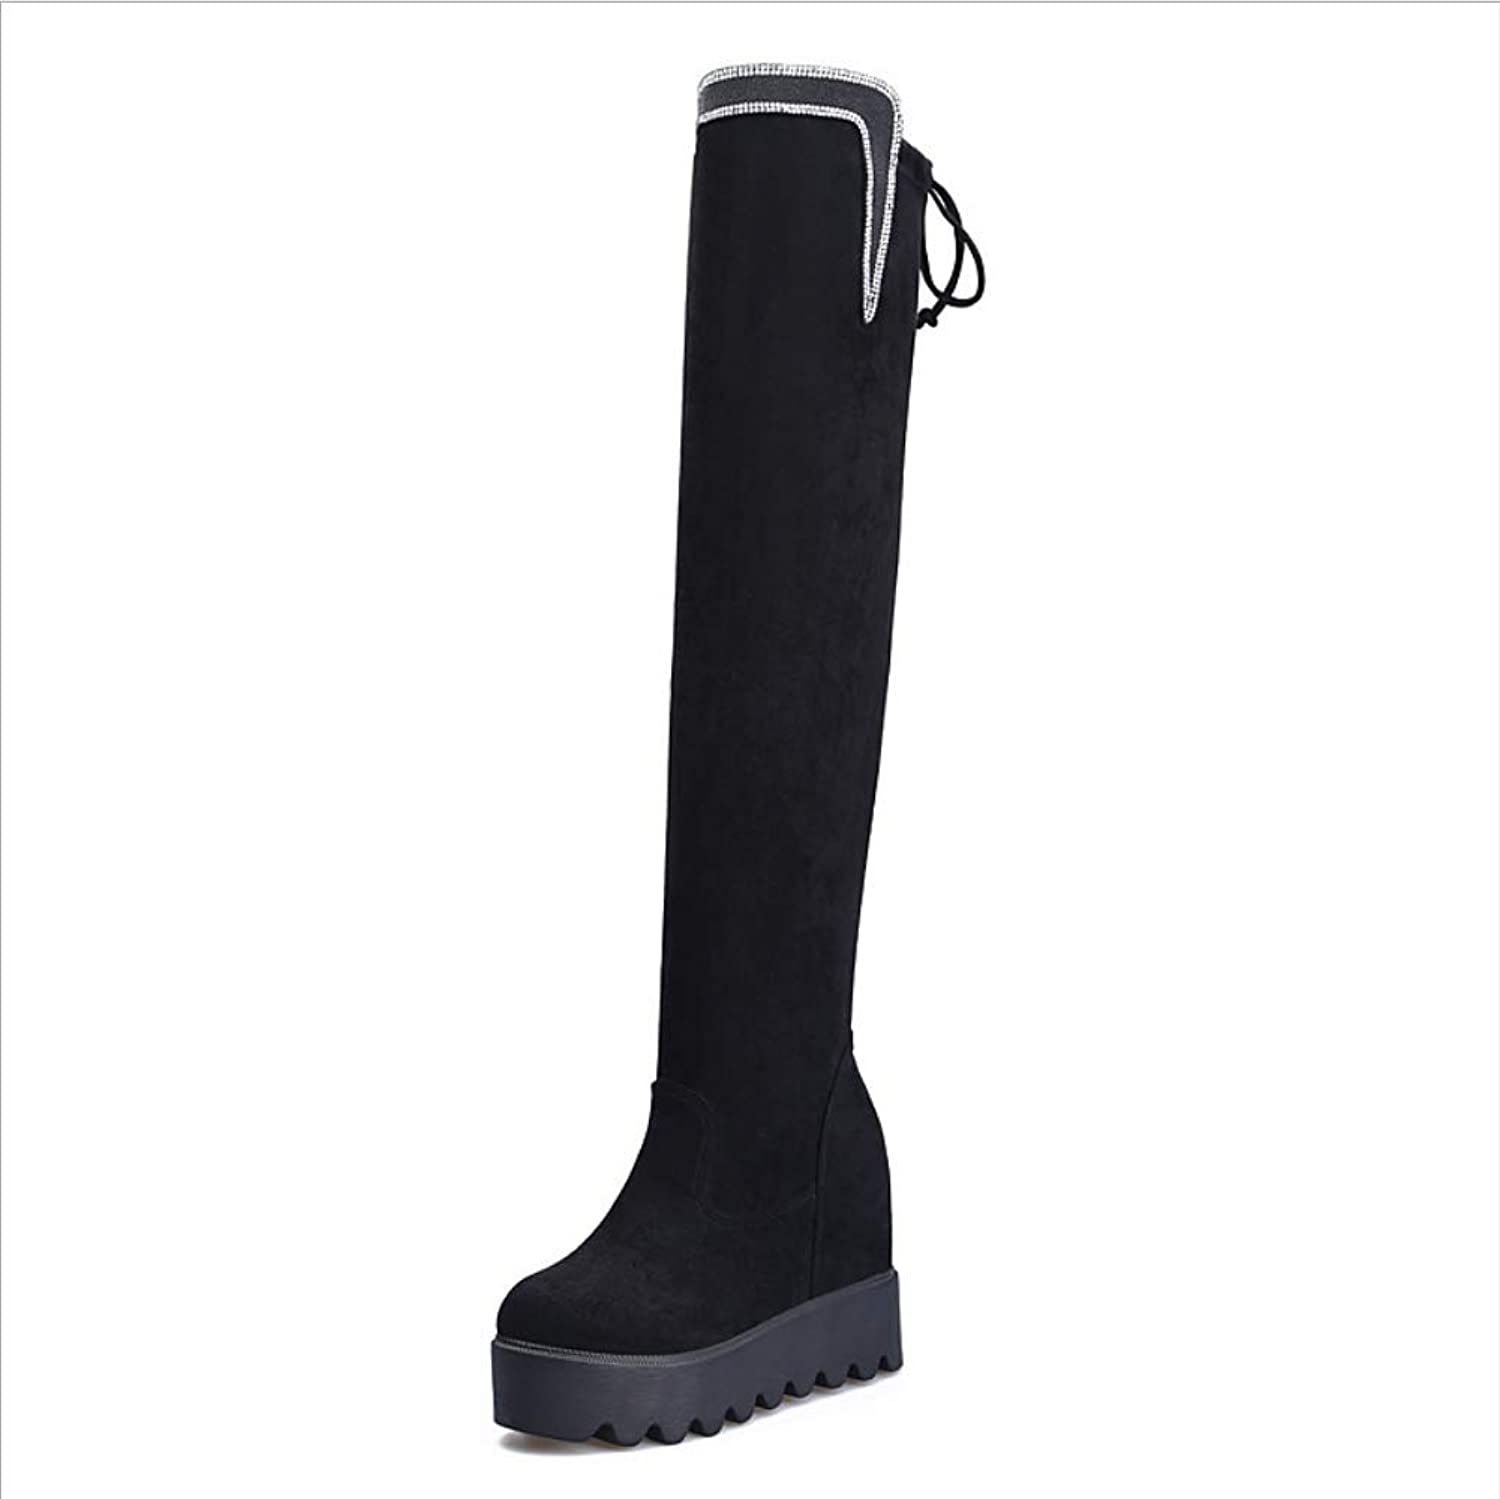 Women's Ladies Over The Knee HIGH Boots Platform Invisible Height 10cm Wedge Heel Suede High Boots Diamonds Plus Velvet Warm Stretch Thigh HIGH Boots